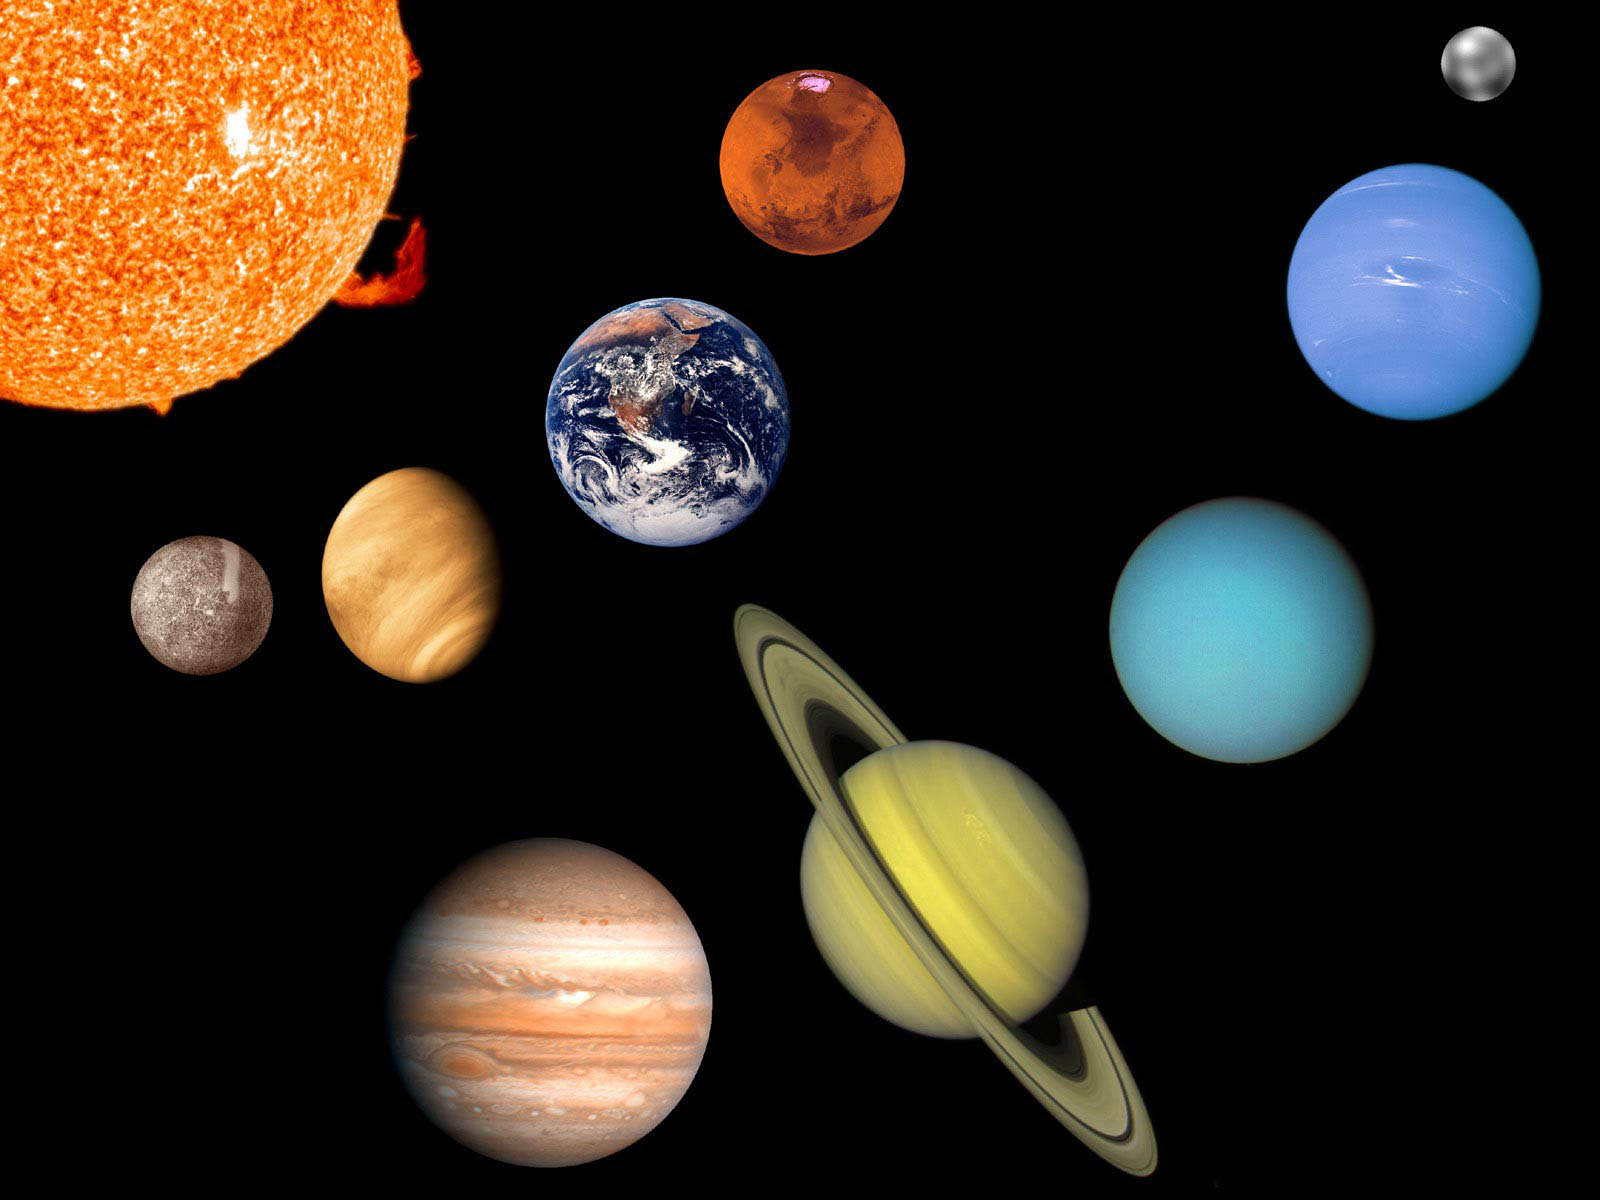 Real space clipart picture free stock Real space clipart - ClipartFox picture free stock